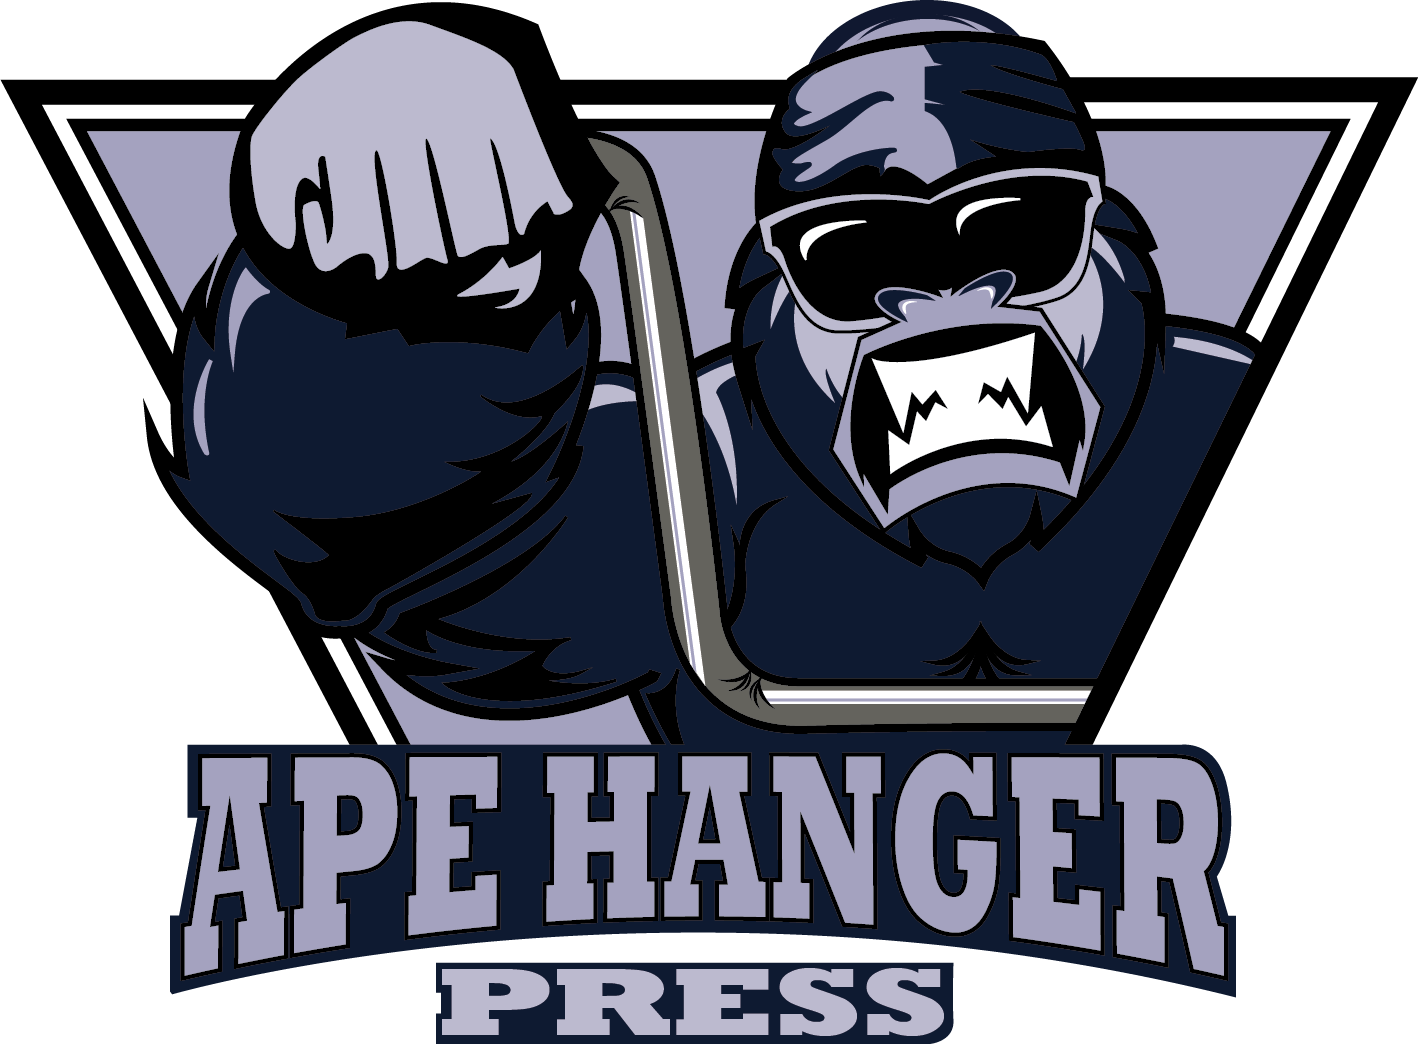 Welcome to Ape Hanger Press!.